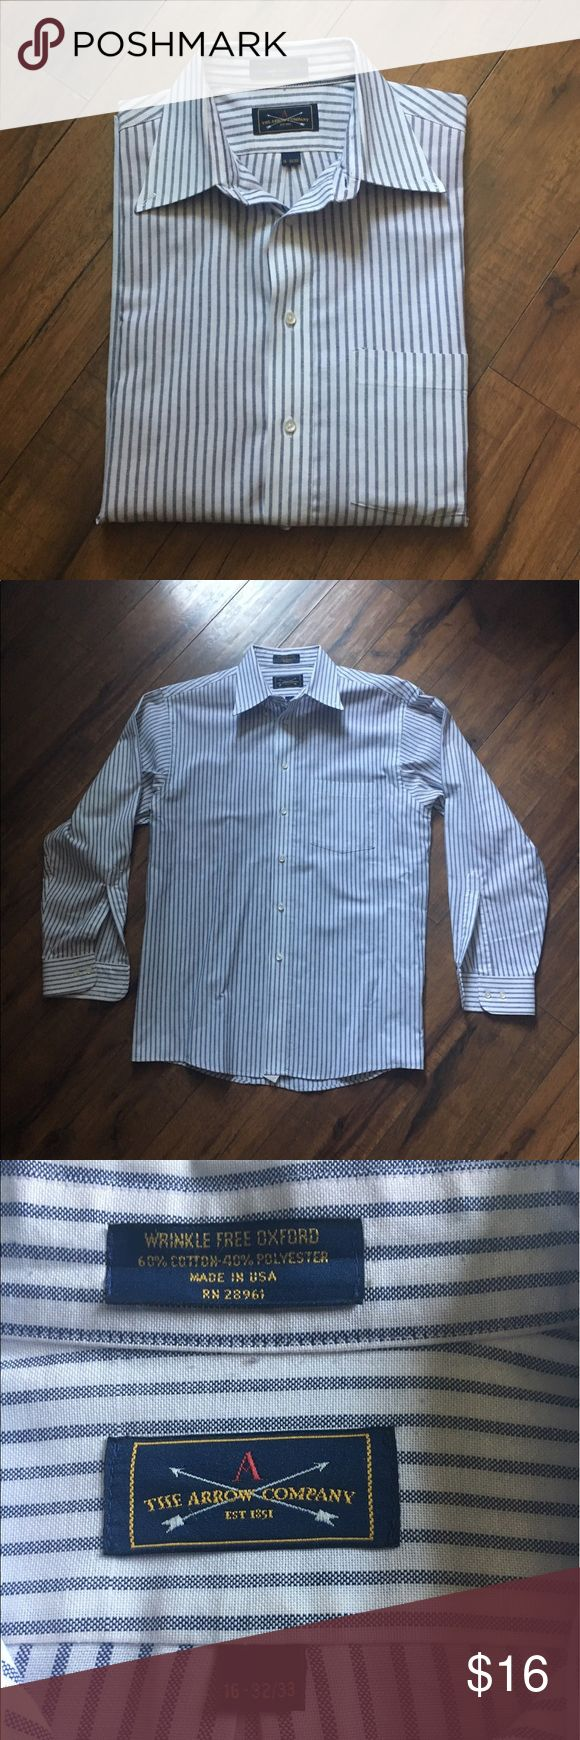 """🔥Arrow long sleeve dress shirt, button down The Arrow Company white/blue striped long sleeved dress shirt.  Excellent condition-like new, except that the dry cleaners marked the inside of the button row with pen (see pic) its not visible from the outside of the shirt.  Neck size 16, sleeve length: 32/33, length: 29"""", armpit to armpit: 23""""                                                                                                      👕 Check out more mens shirts in my closet 👕…"""